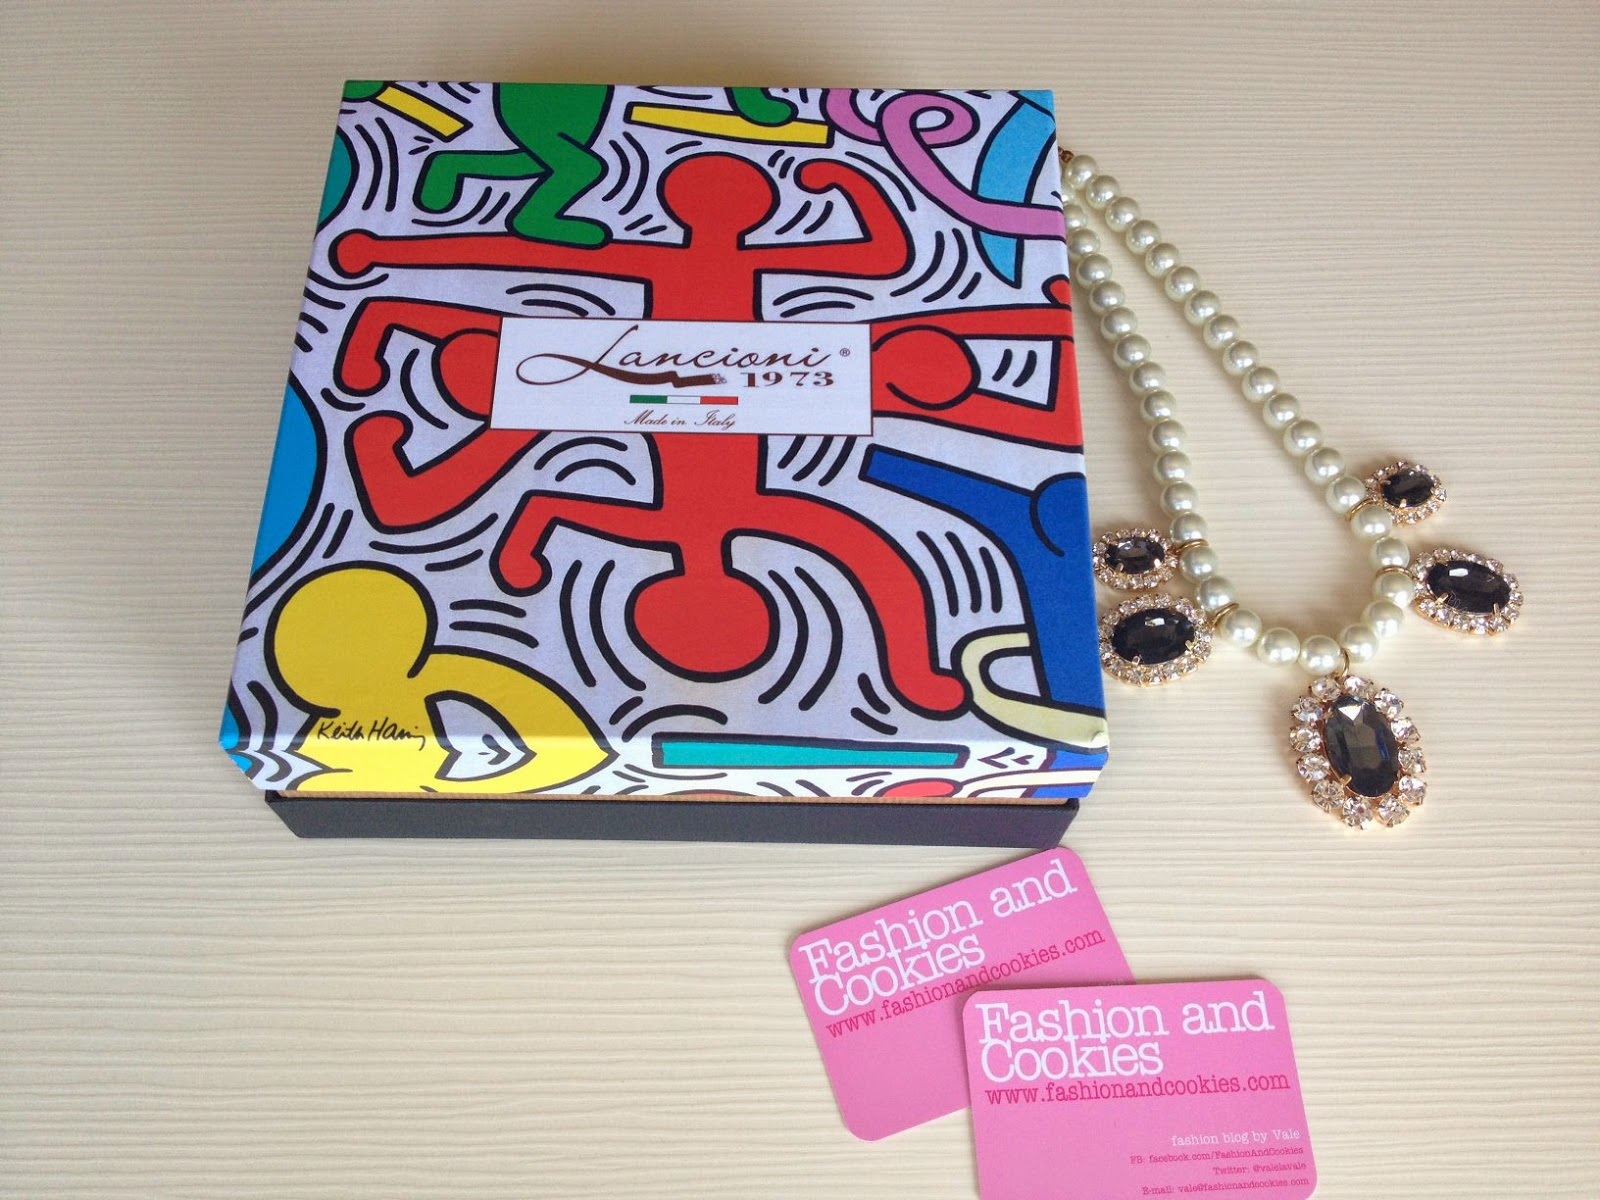 Lancioni 1973, sciarpa Tuttomondo Keith Haring, Fashion and Cookies, fashion blogger